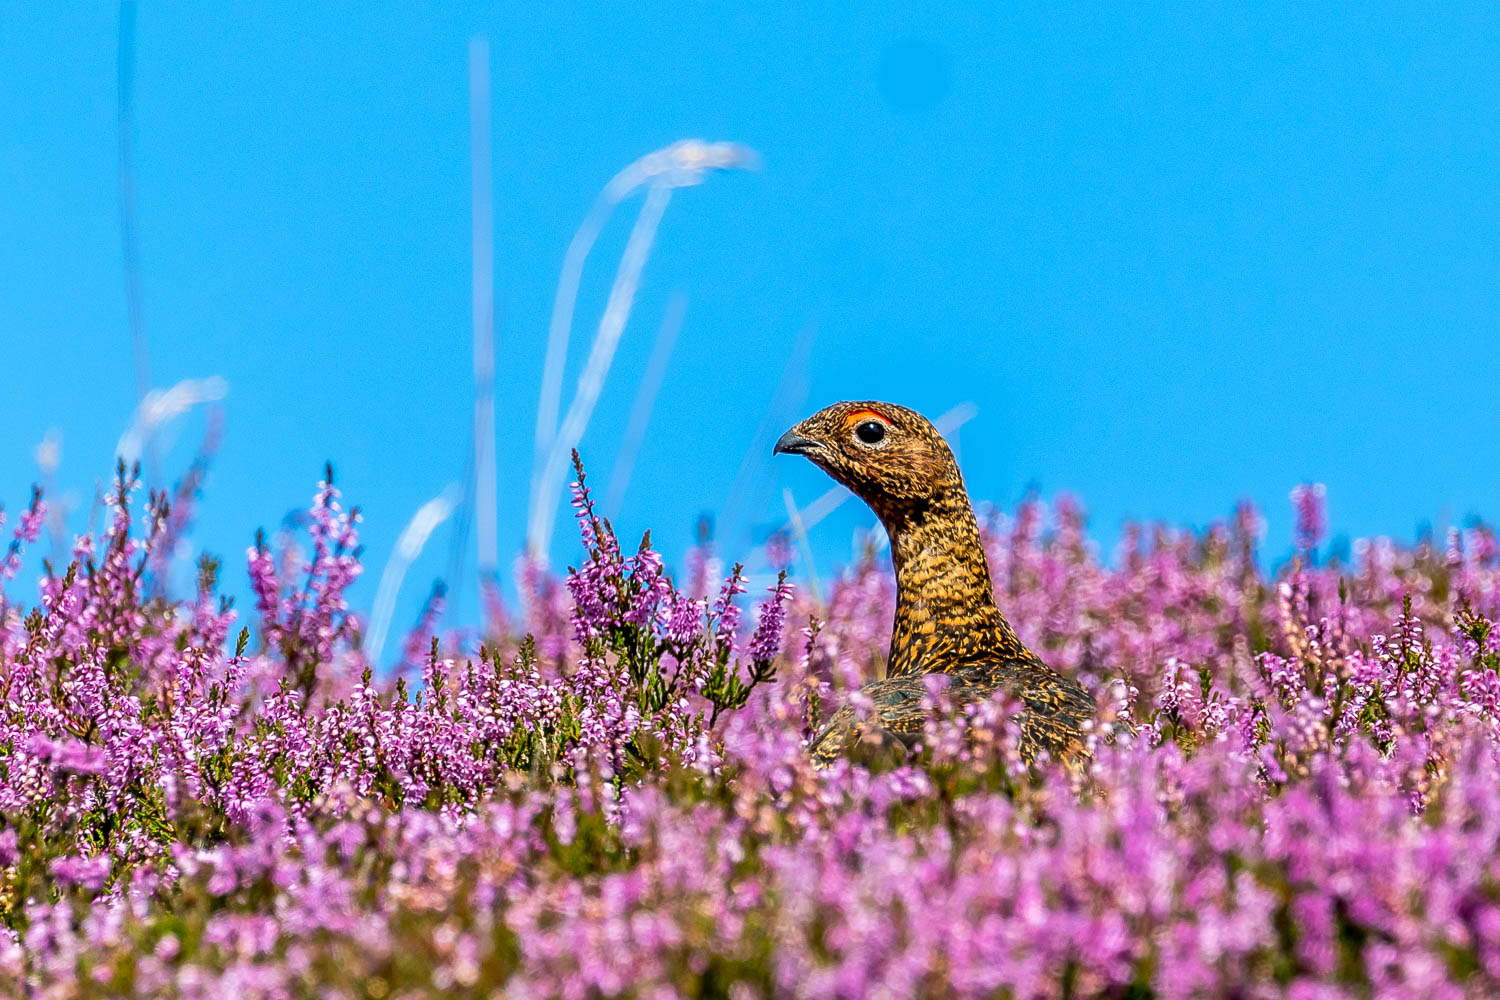 Swaledale walk, red grouse